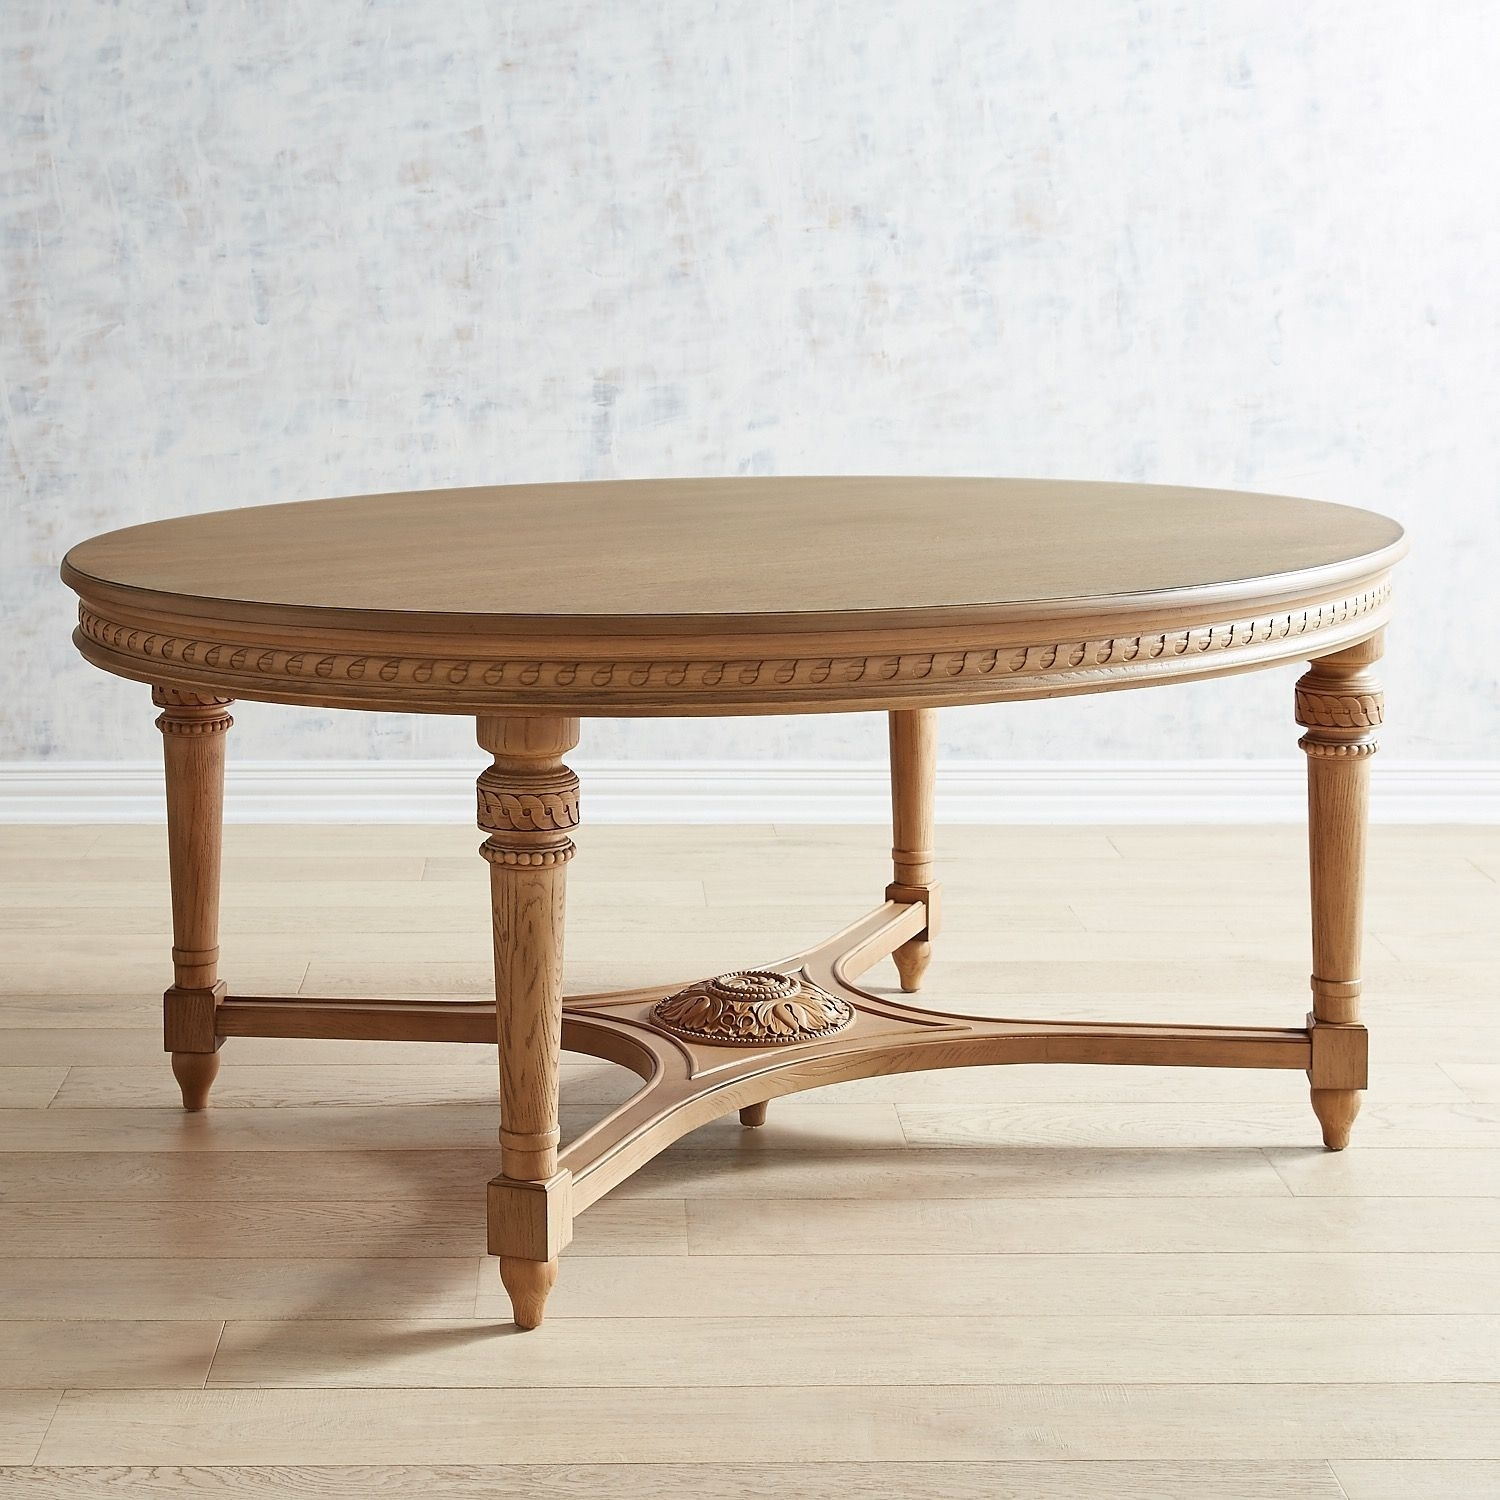 Magnolia Home English Country Wheat Oval Dining Table | For The Home Within 2017 Magnolia Home English Country Oval Dining Tables (Image 15 of 20)